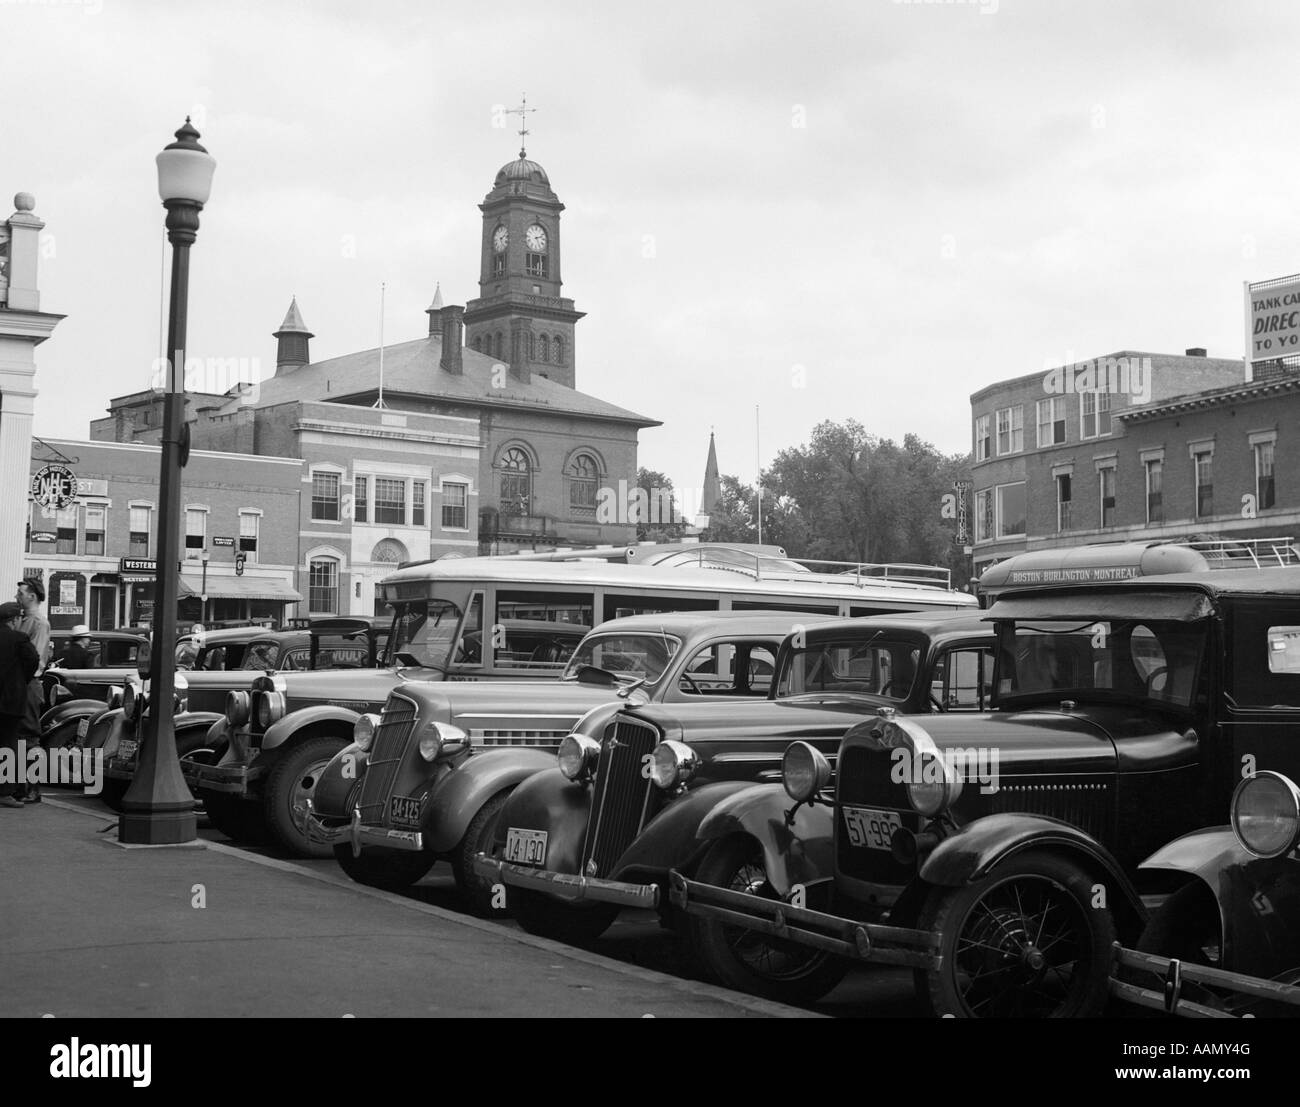 1930s BUSES CARS PARKED SMALL TOWN SQUARE SMALL TOWN CLAREMONT NEW HAMPSHIRE USA - Stock Image